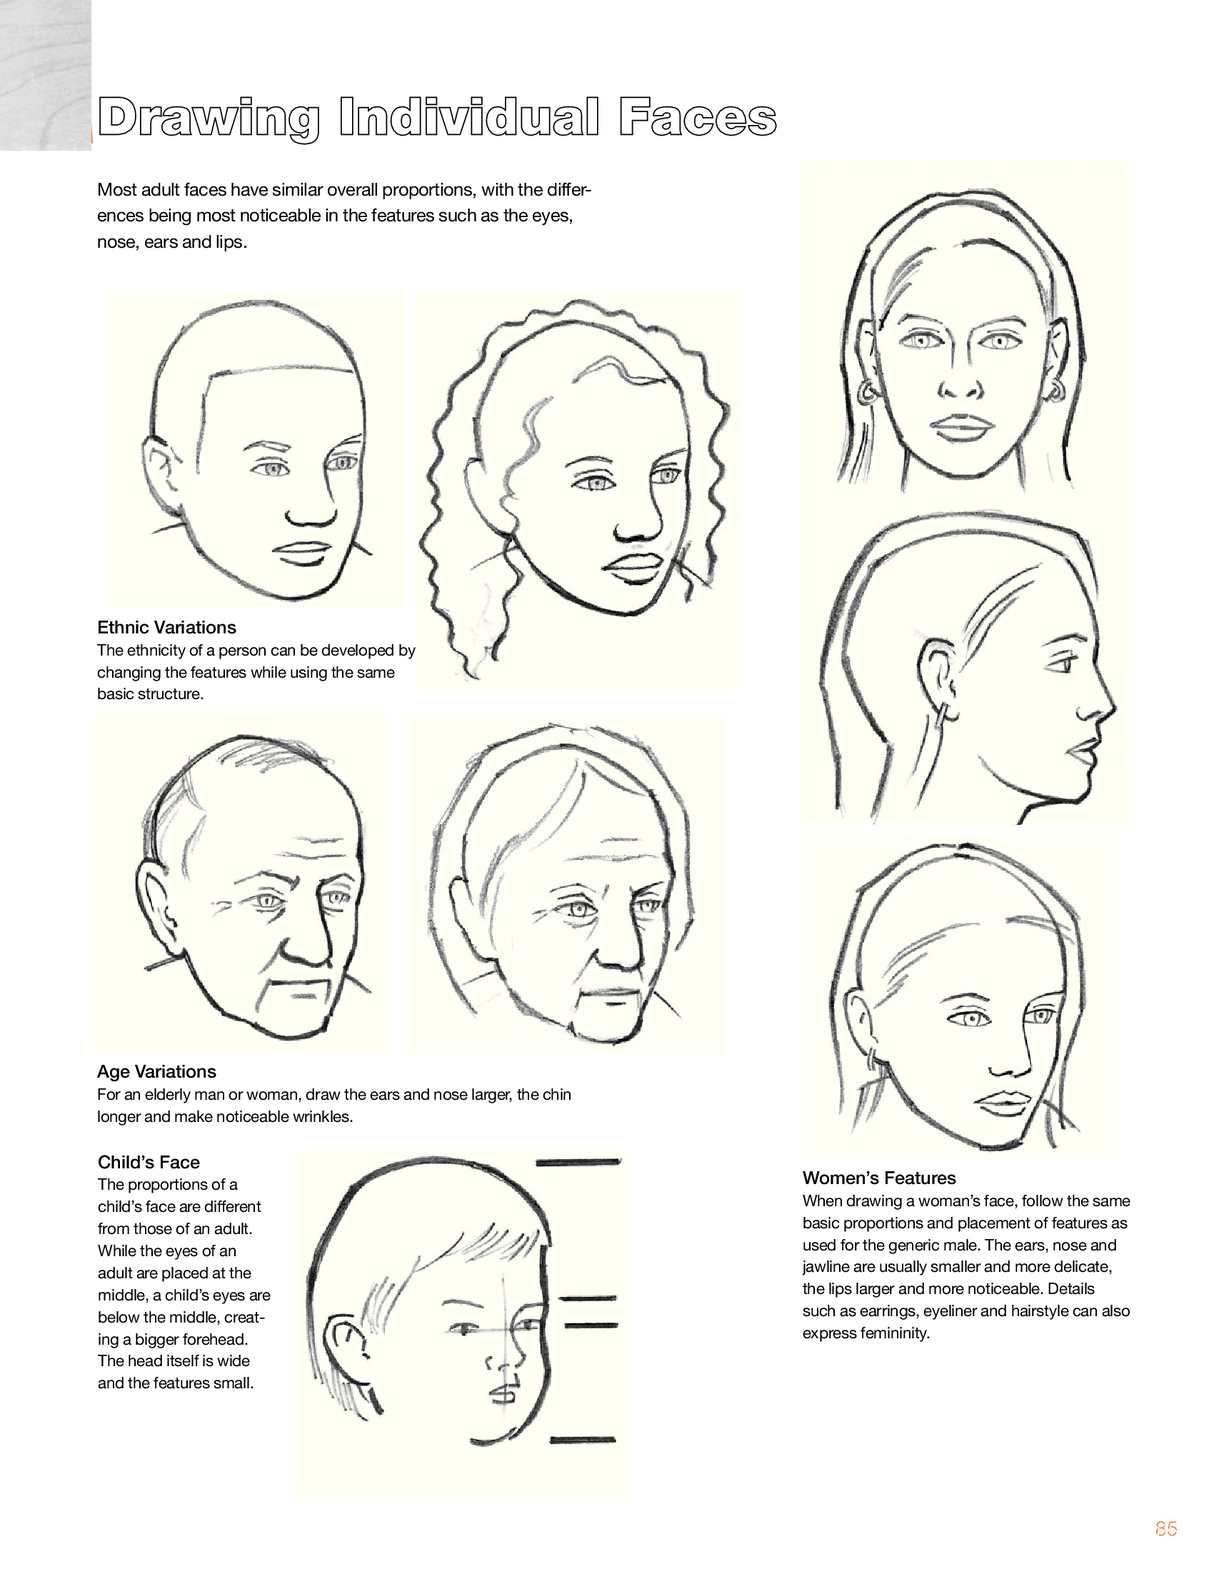 Howtodrawaportrait28 Noses Eyes Ears Features Proportions